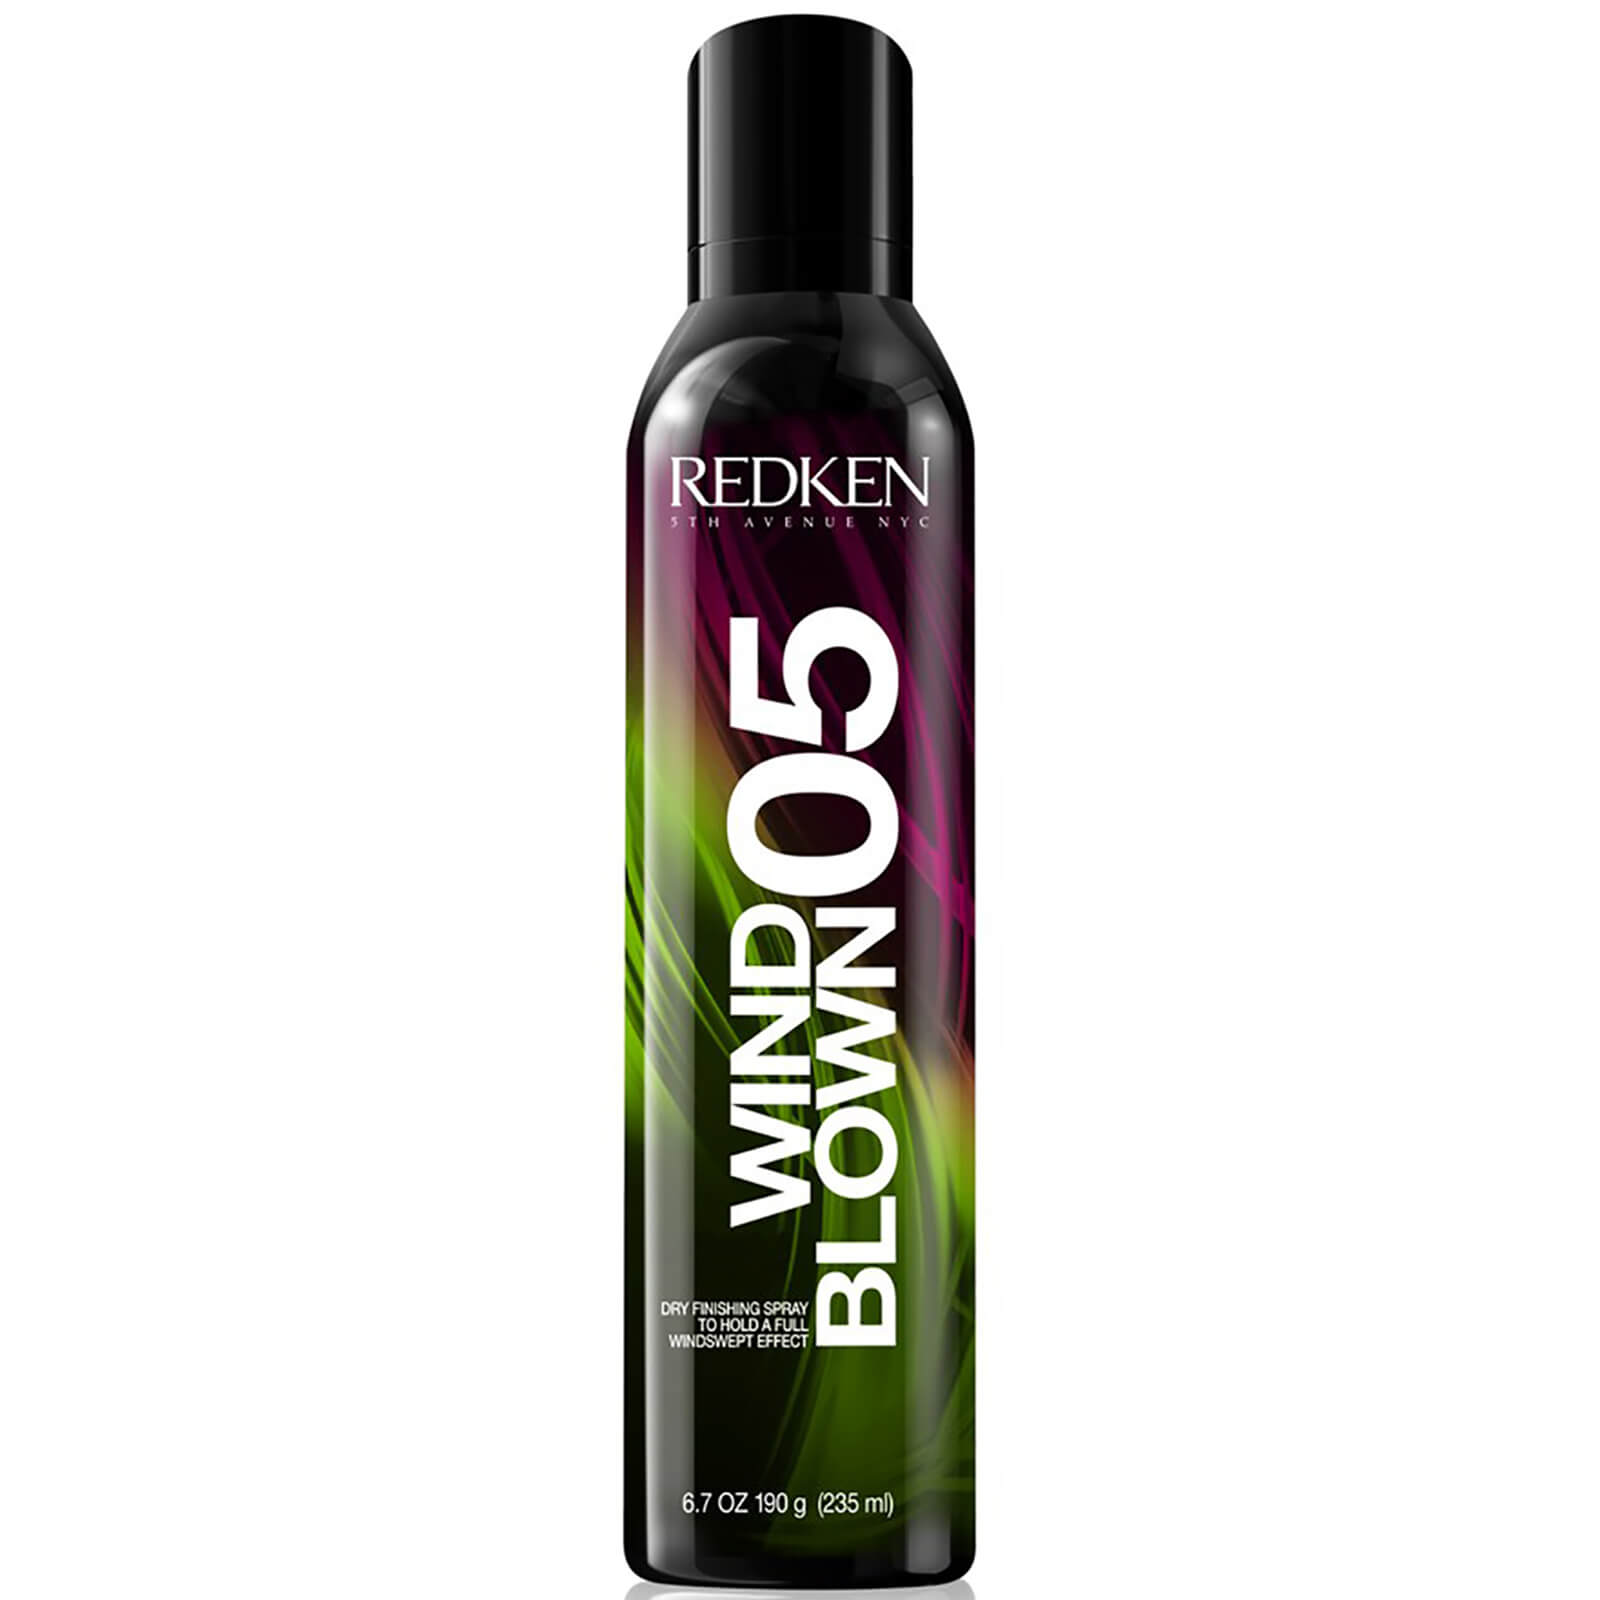 Redken Wind Blown Dry Finishing Spray 250ml Free Shipping Clear Shampoo New Complete Soft Care 170ml The Ultimate Messy Bun Tutorial With